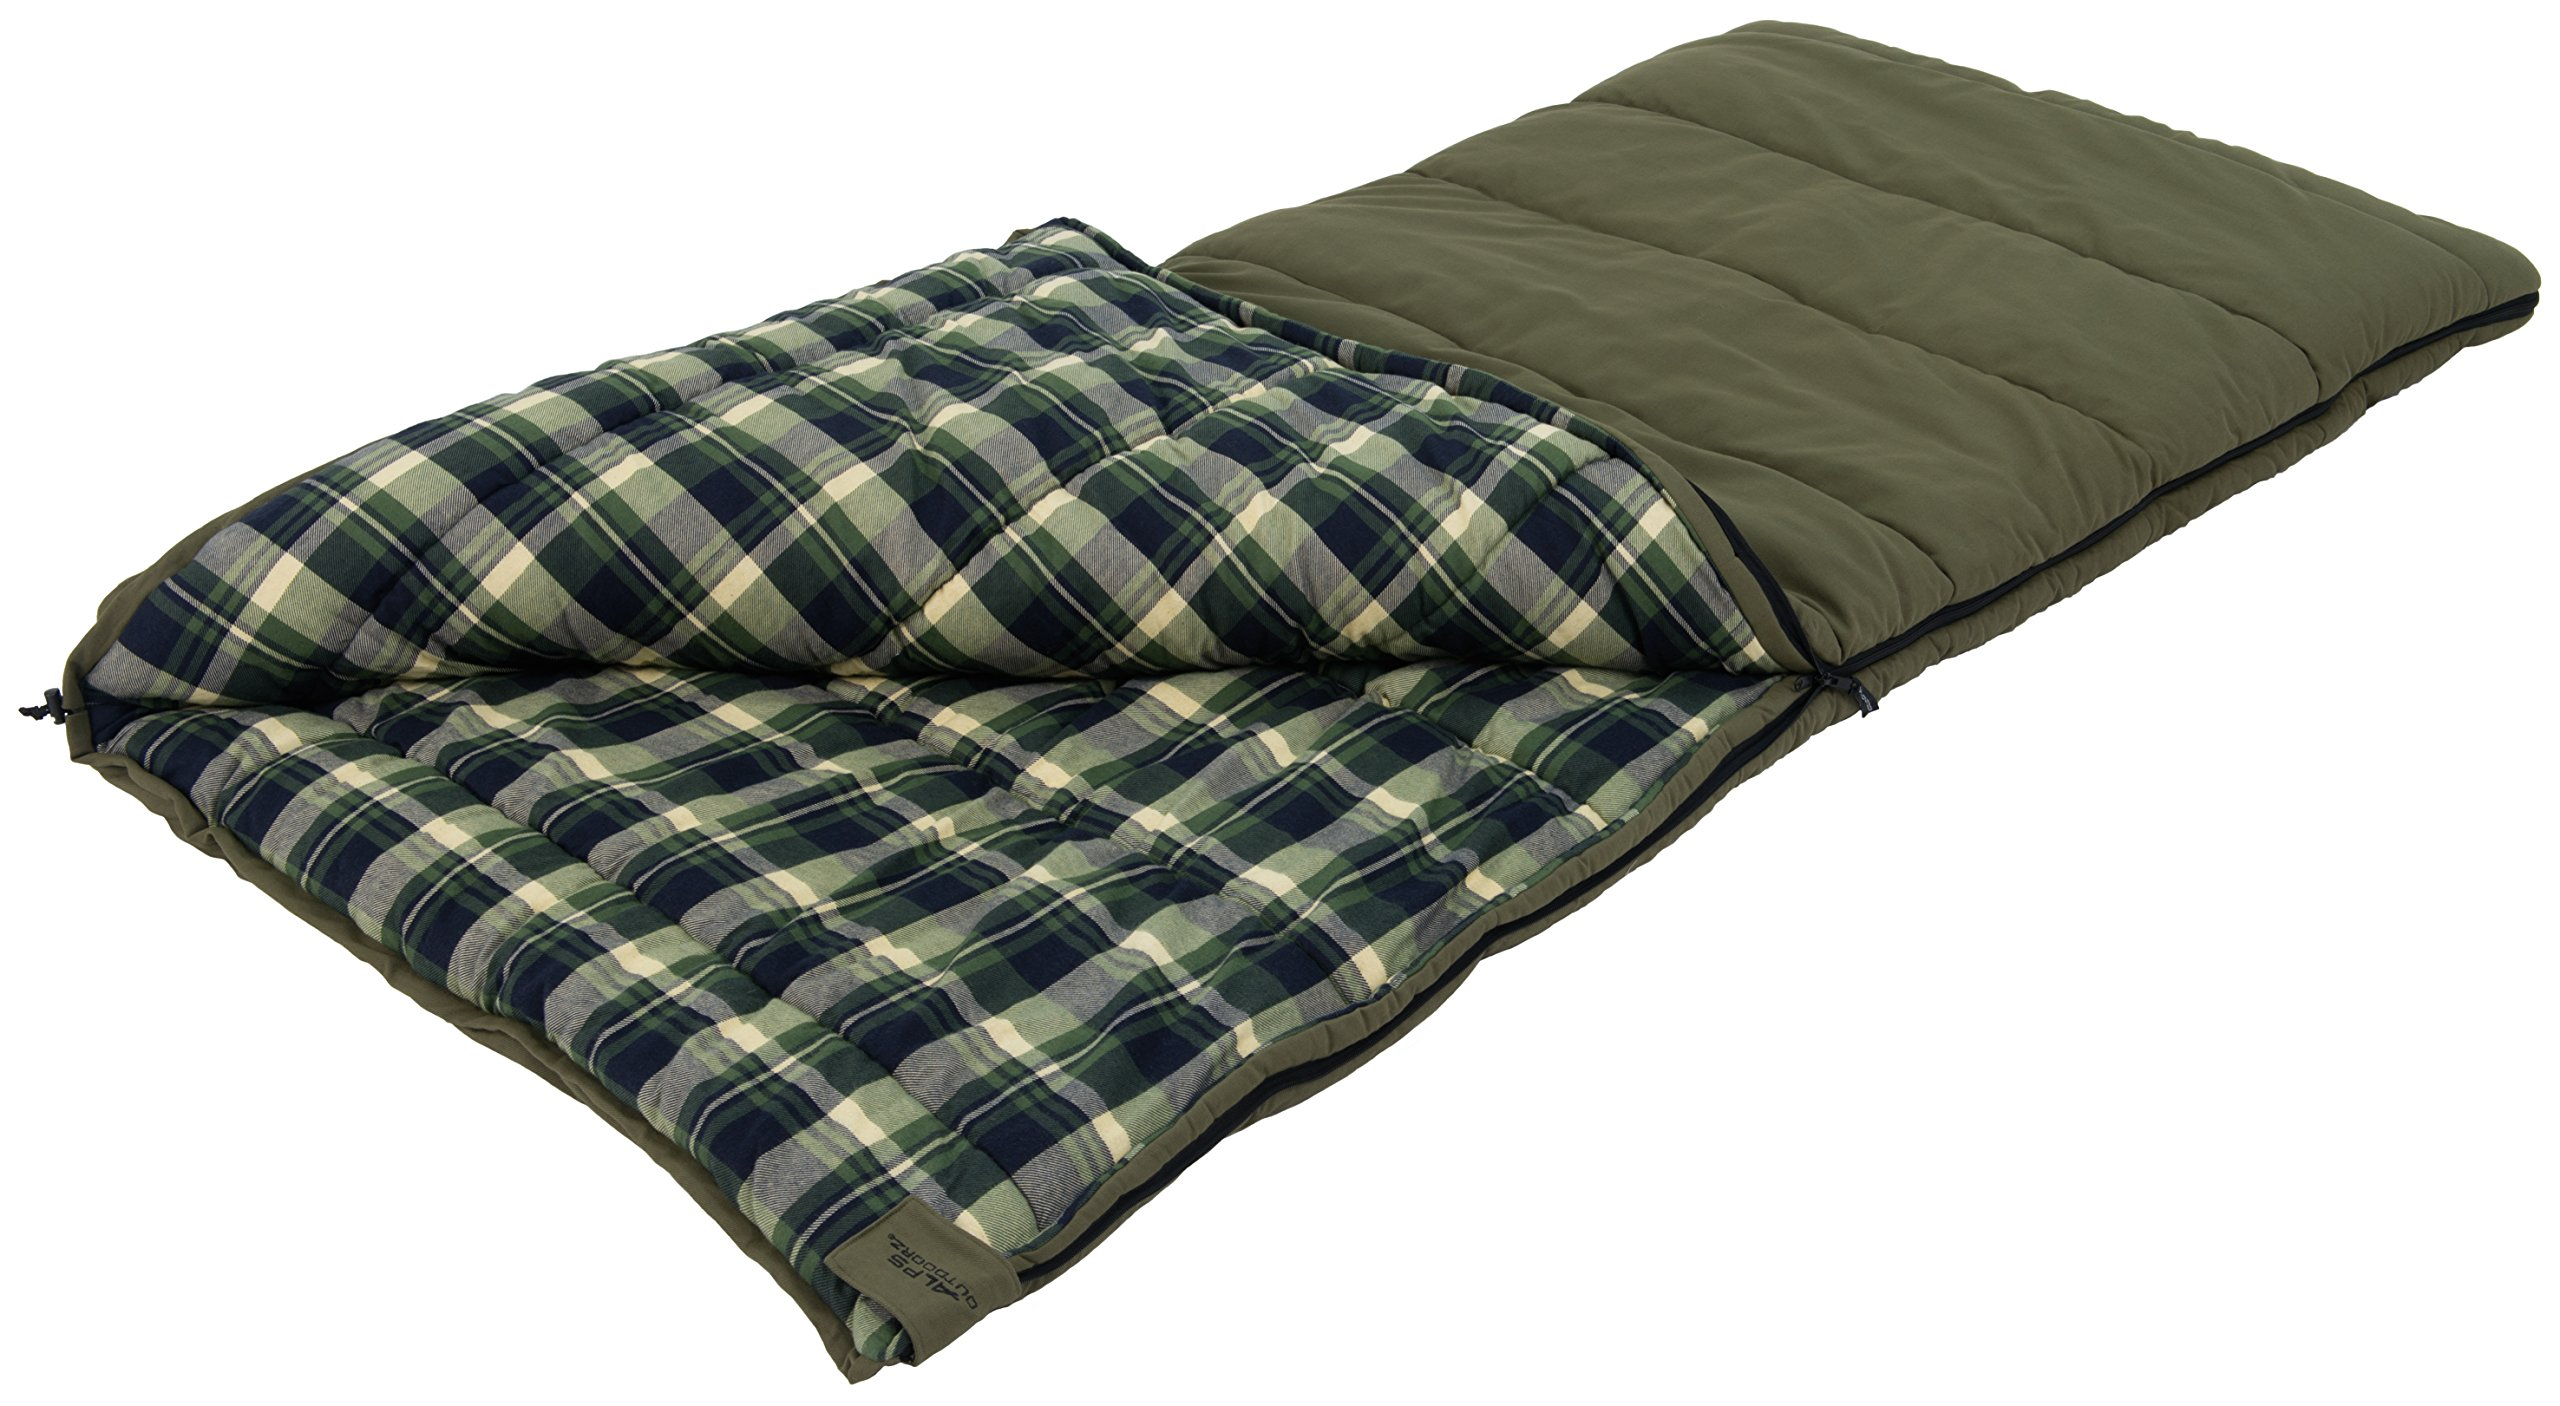 ALPS OutdoorZ Redwood -10 Degree Flannel Sleeping Bag by ALPS OutdoorZ